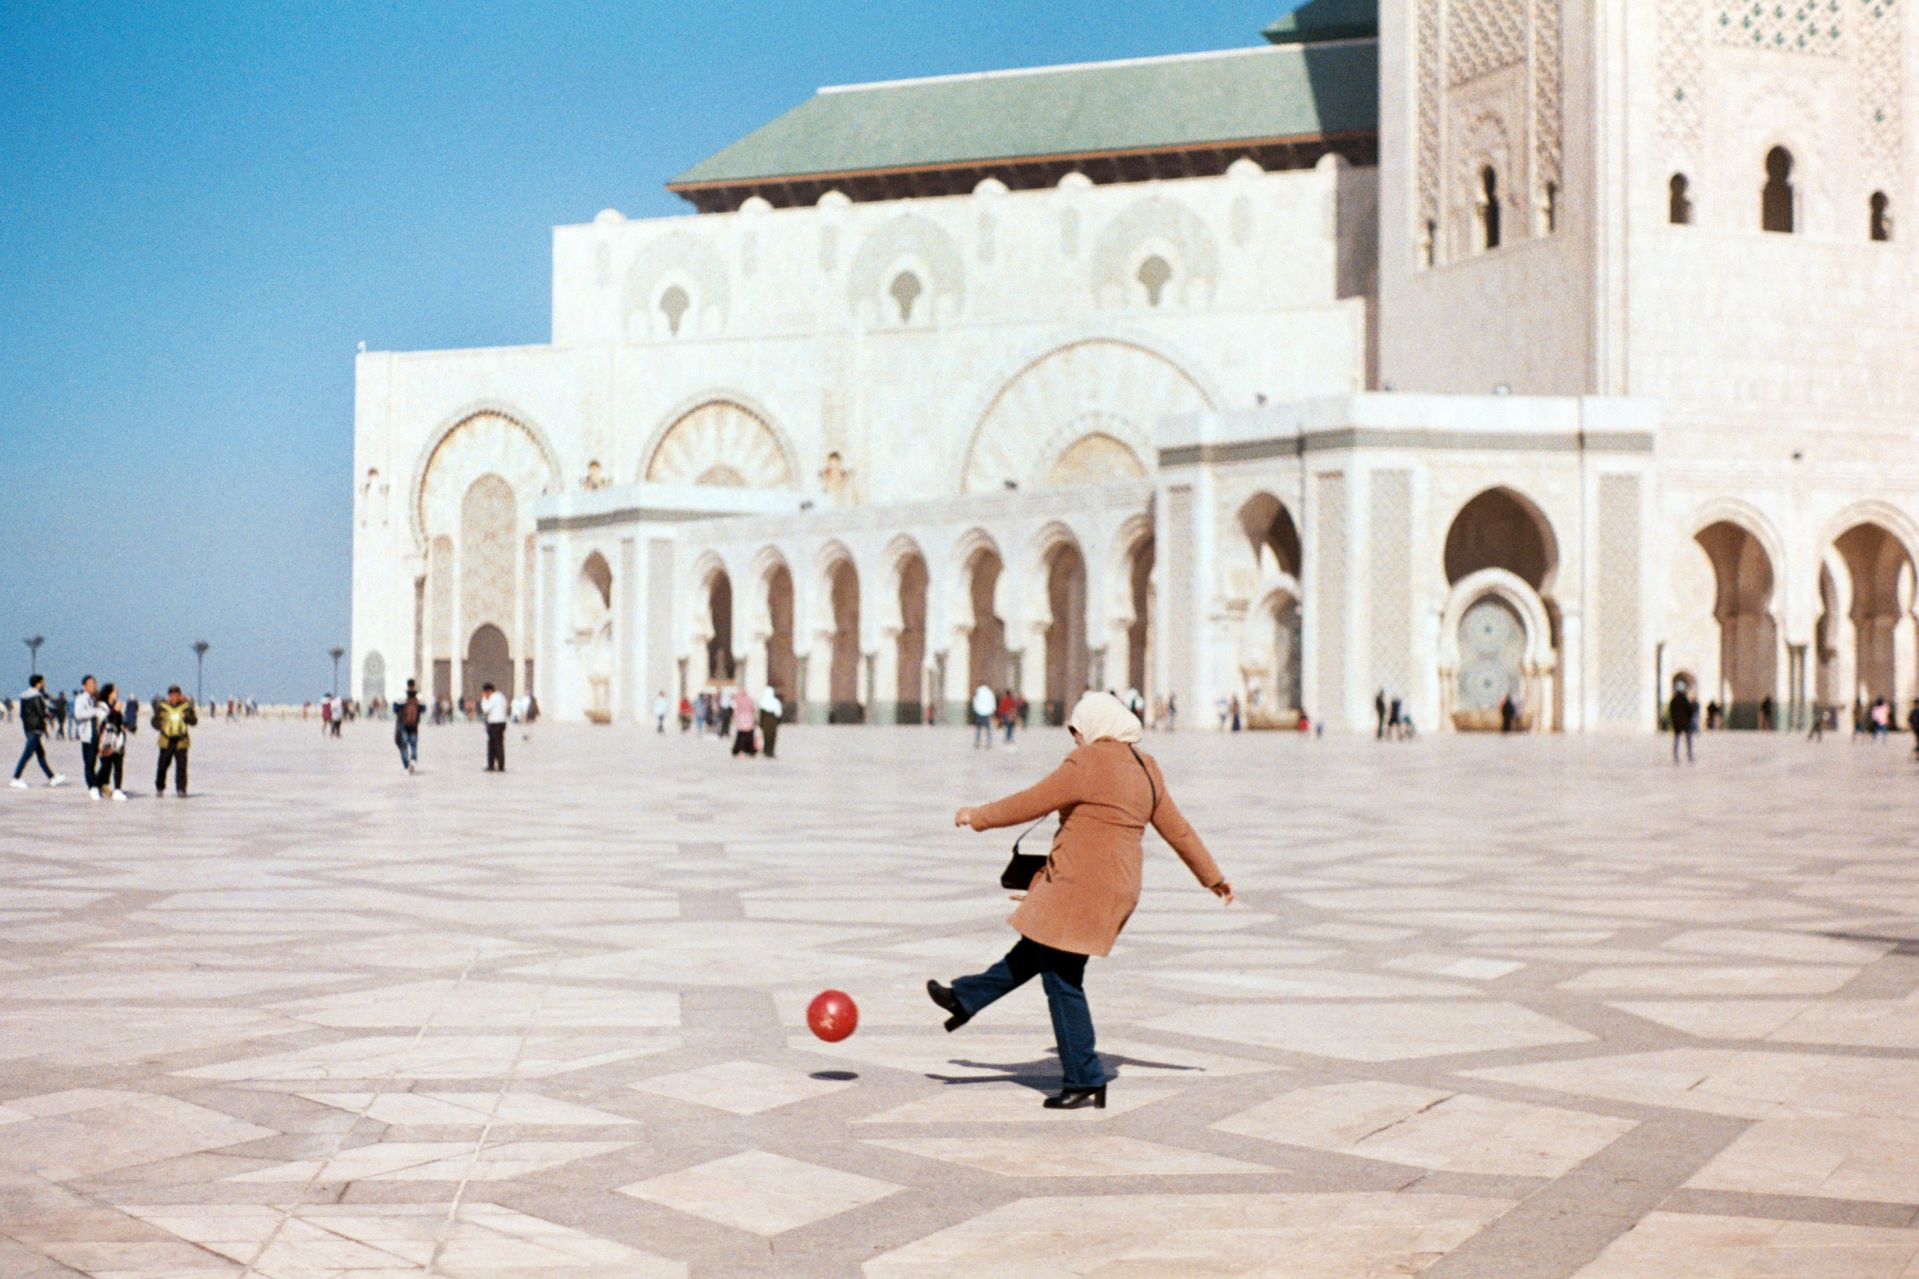 Klein, Josh SIT Morocco Spring 2018 A mother plays soccer with her son outside of the Hassan II Mosque in Casablanca, Morocco. Crowds of people gathered in the expansive square after leaving the International Book Fair that takes place in the capital every February. The mosque is the largest on the continent of Africa and was built overlooking the Atlantic Ocean to commemorate the late King. This photo was selected for the 2019 Barlow Off-Campus Photography Exhibition and shown at the 2019 Mount David Summit on March 29, 2019.